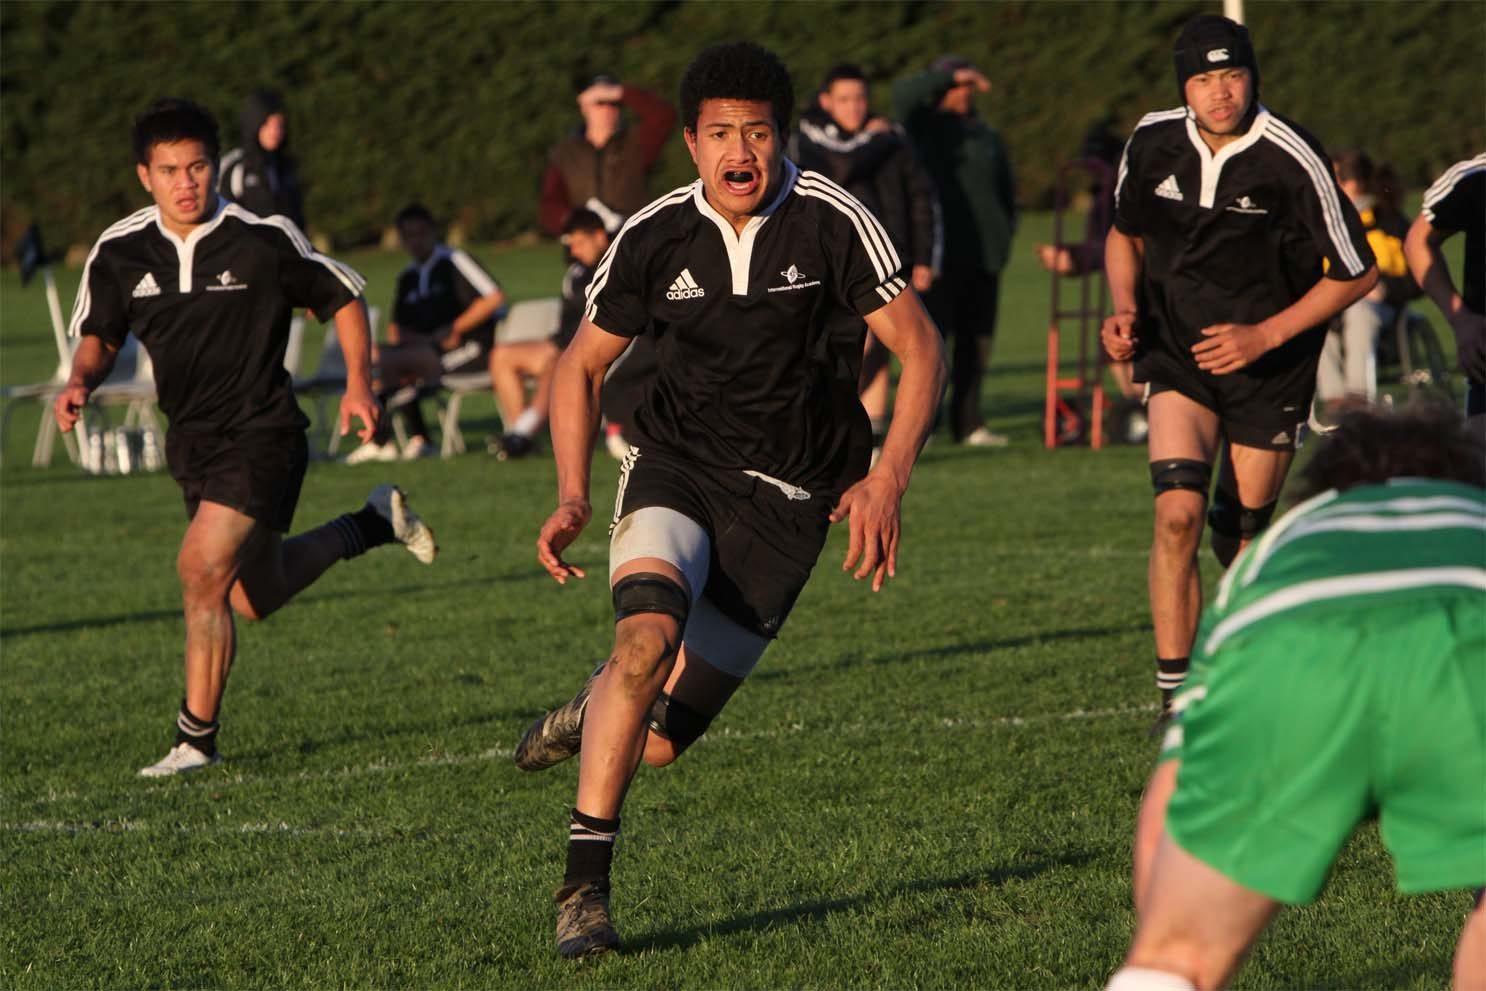 Ardie Savea was outstanding when he attended the Advanced Players Course in 2009